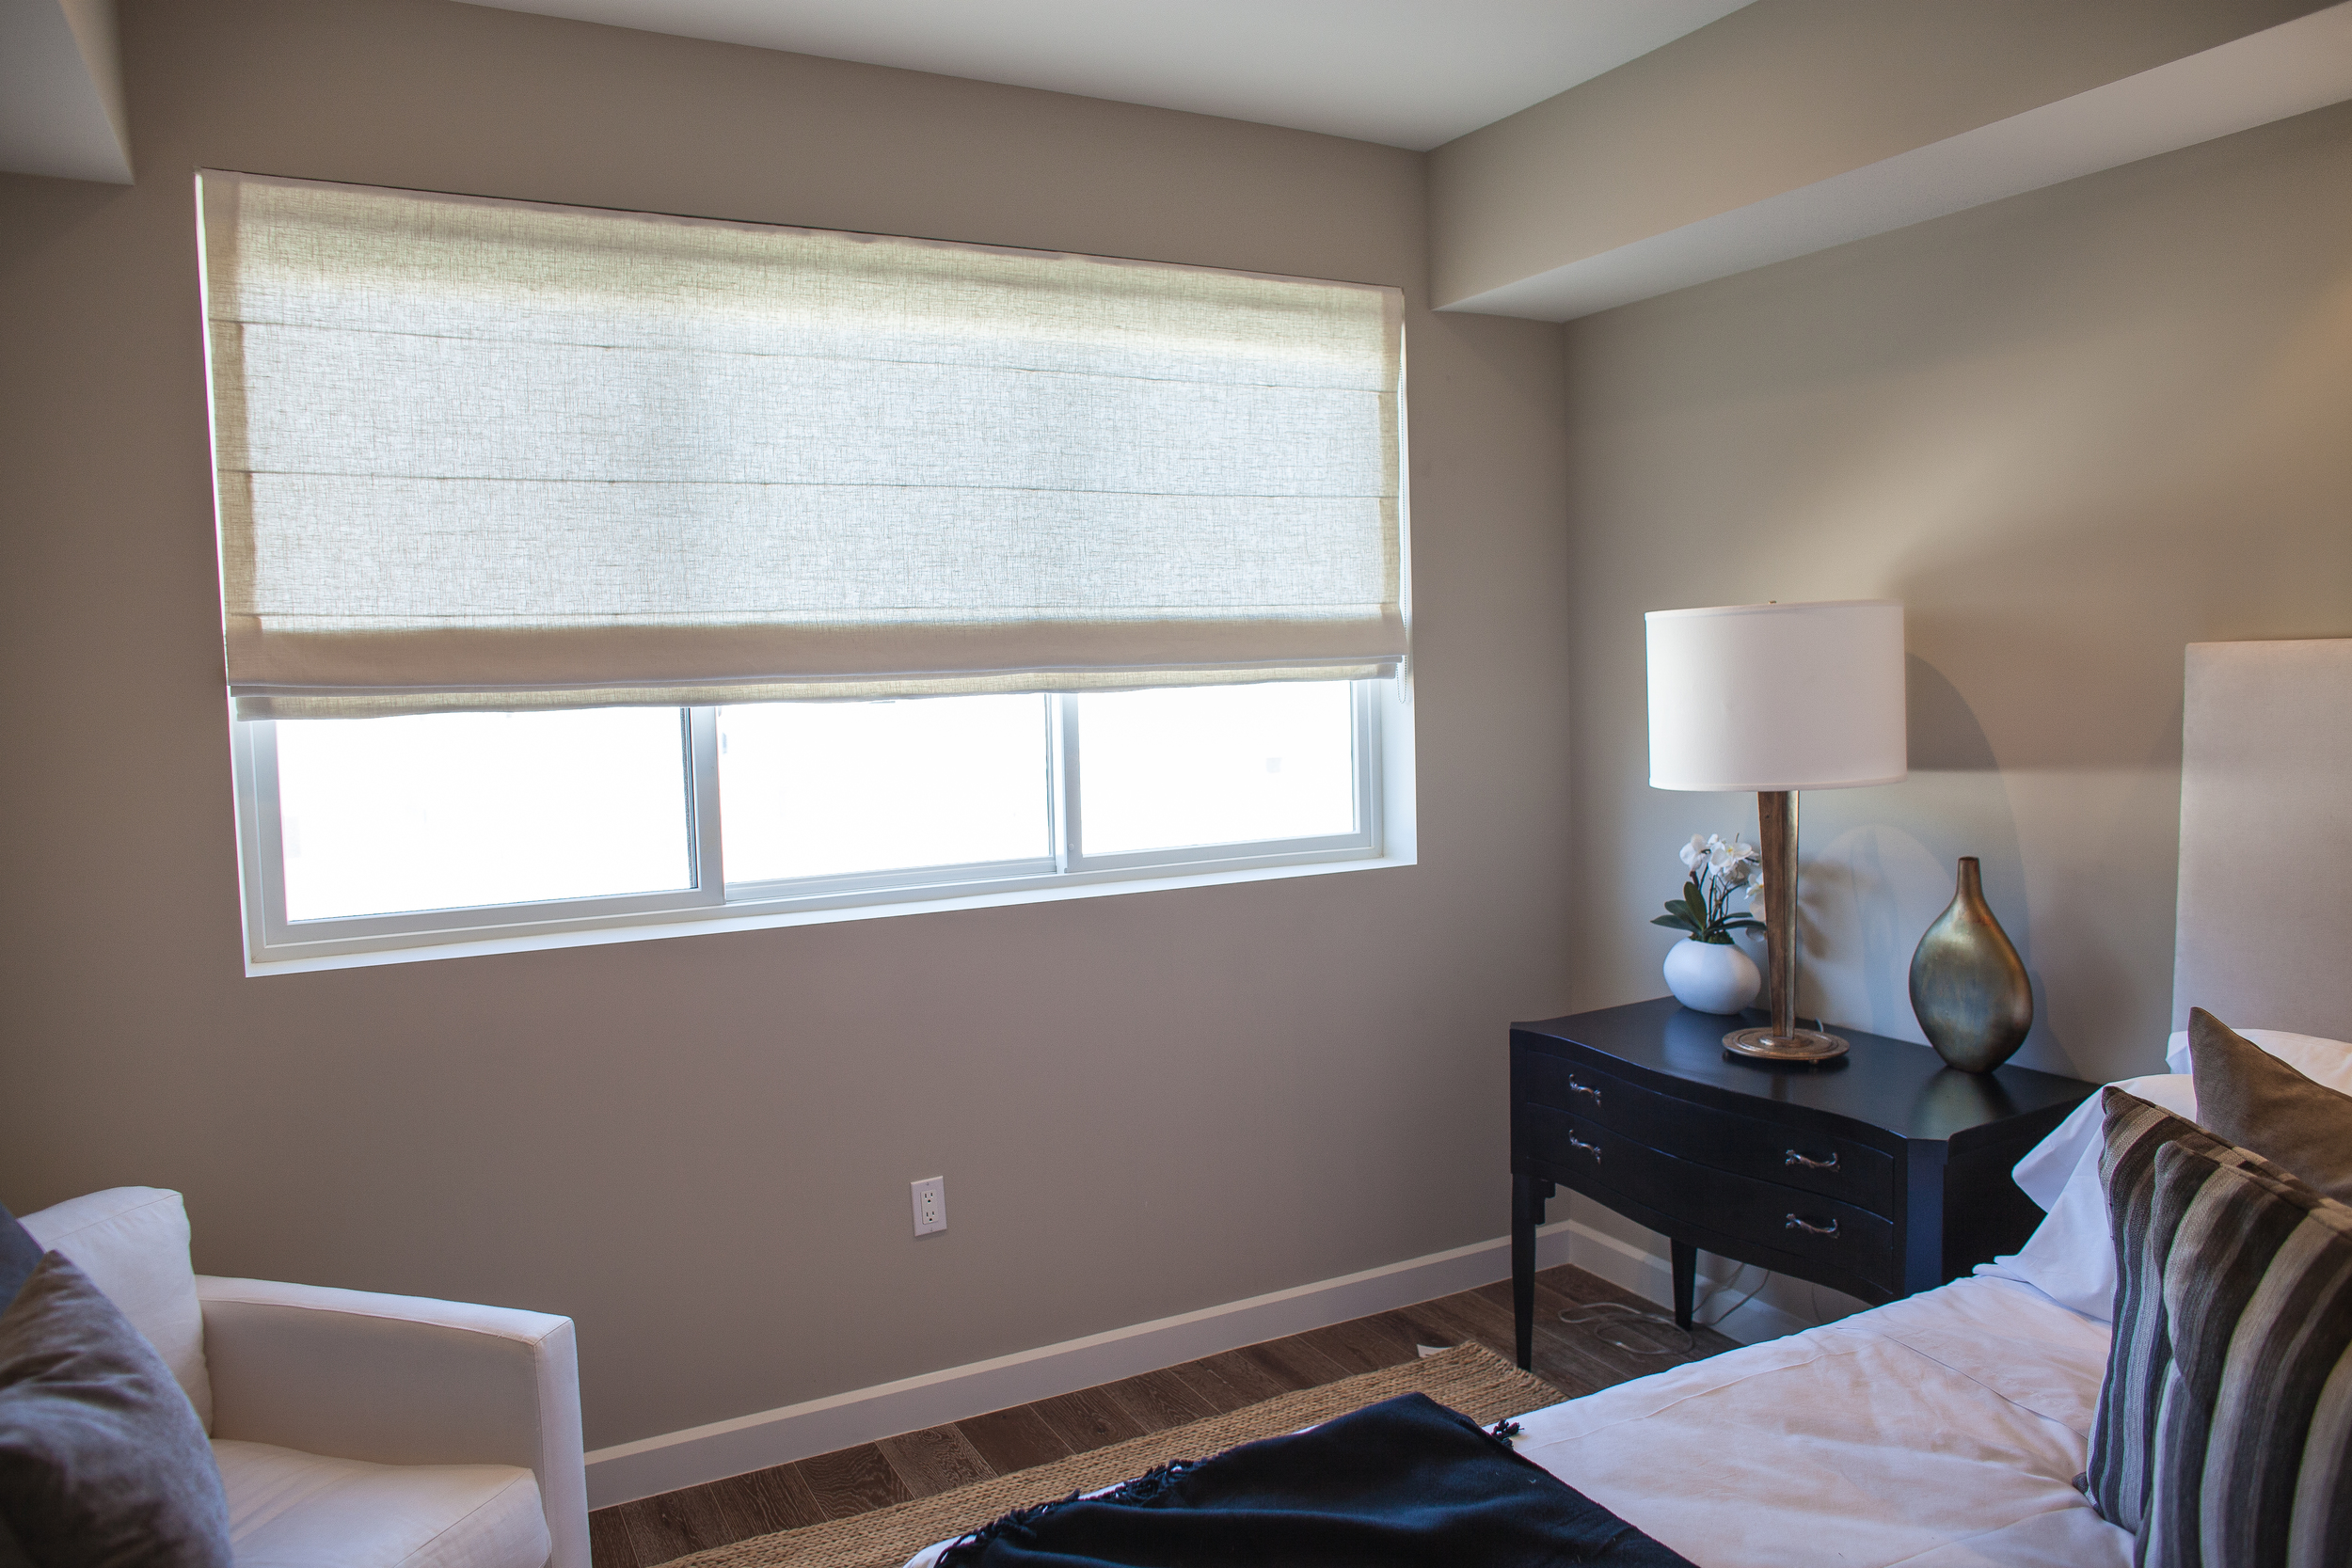 Roman Shades in the Bedroom